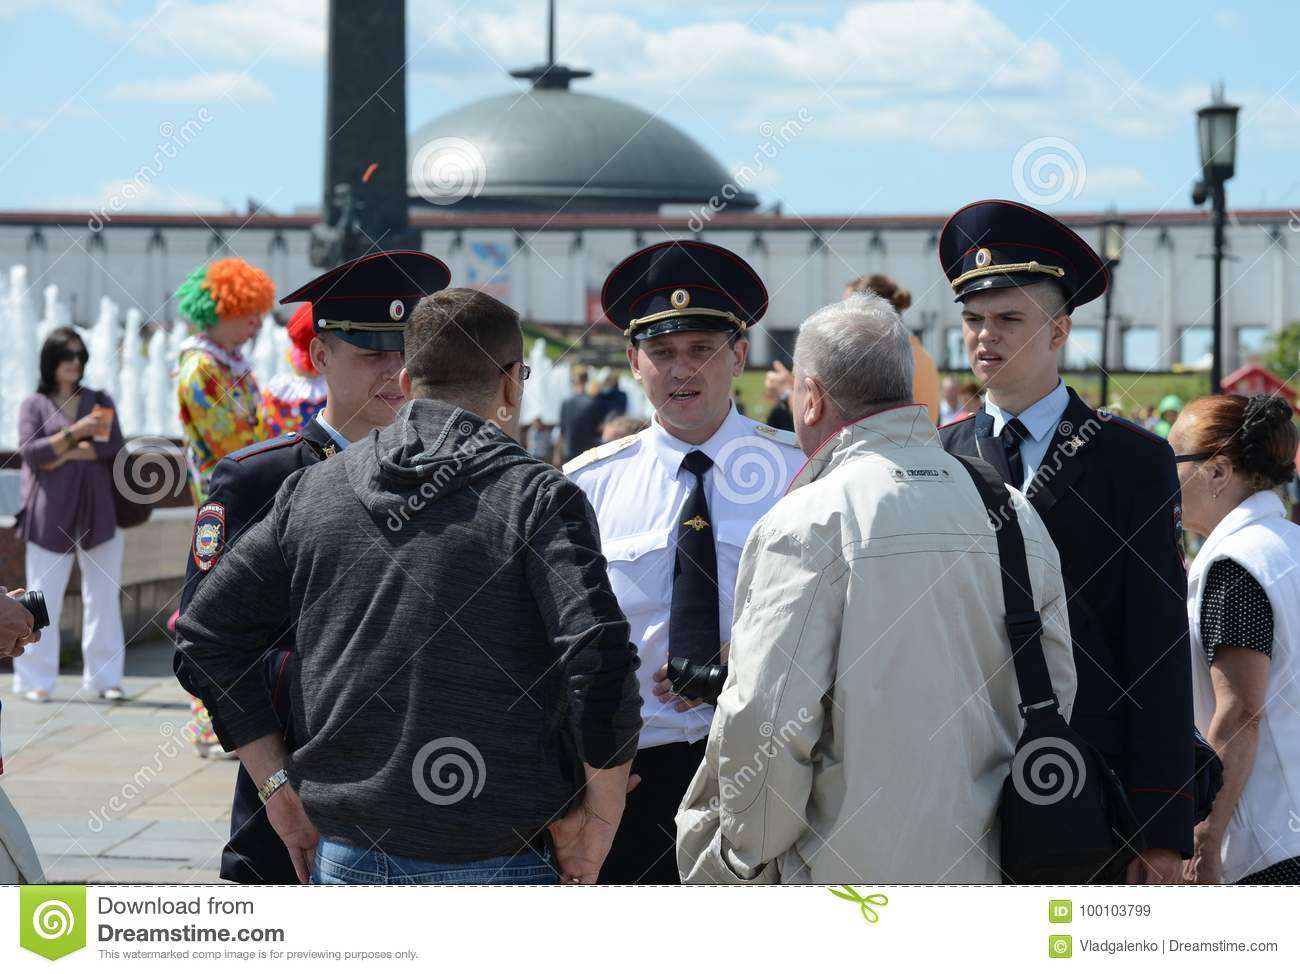 Tourist police in Russia: the purpose of creation, functions, reviews 45